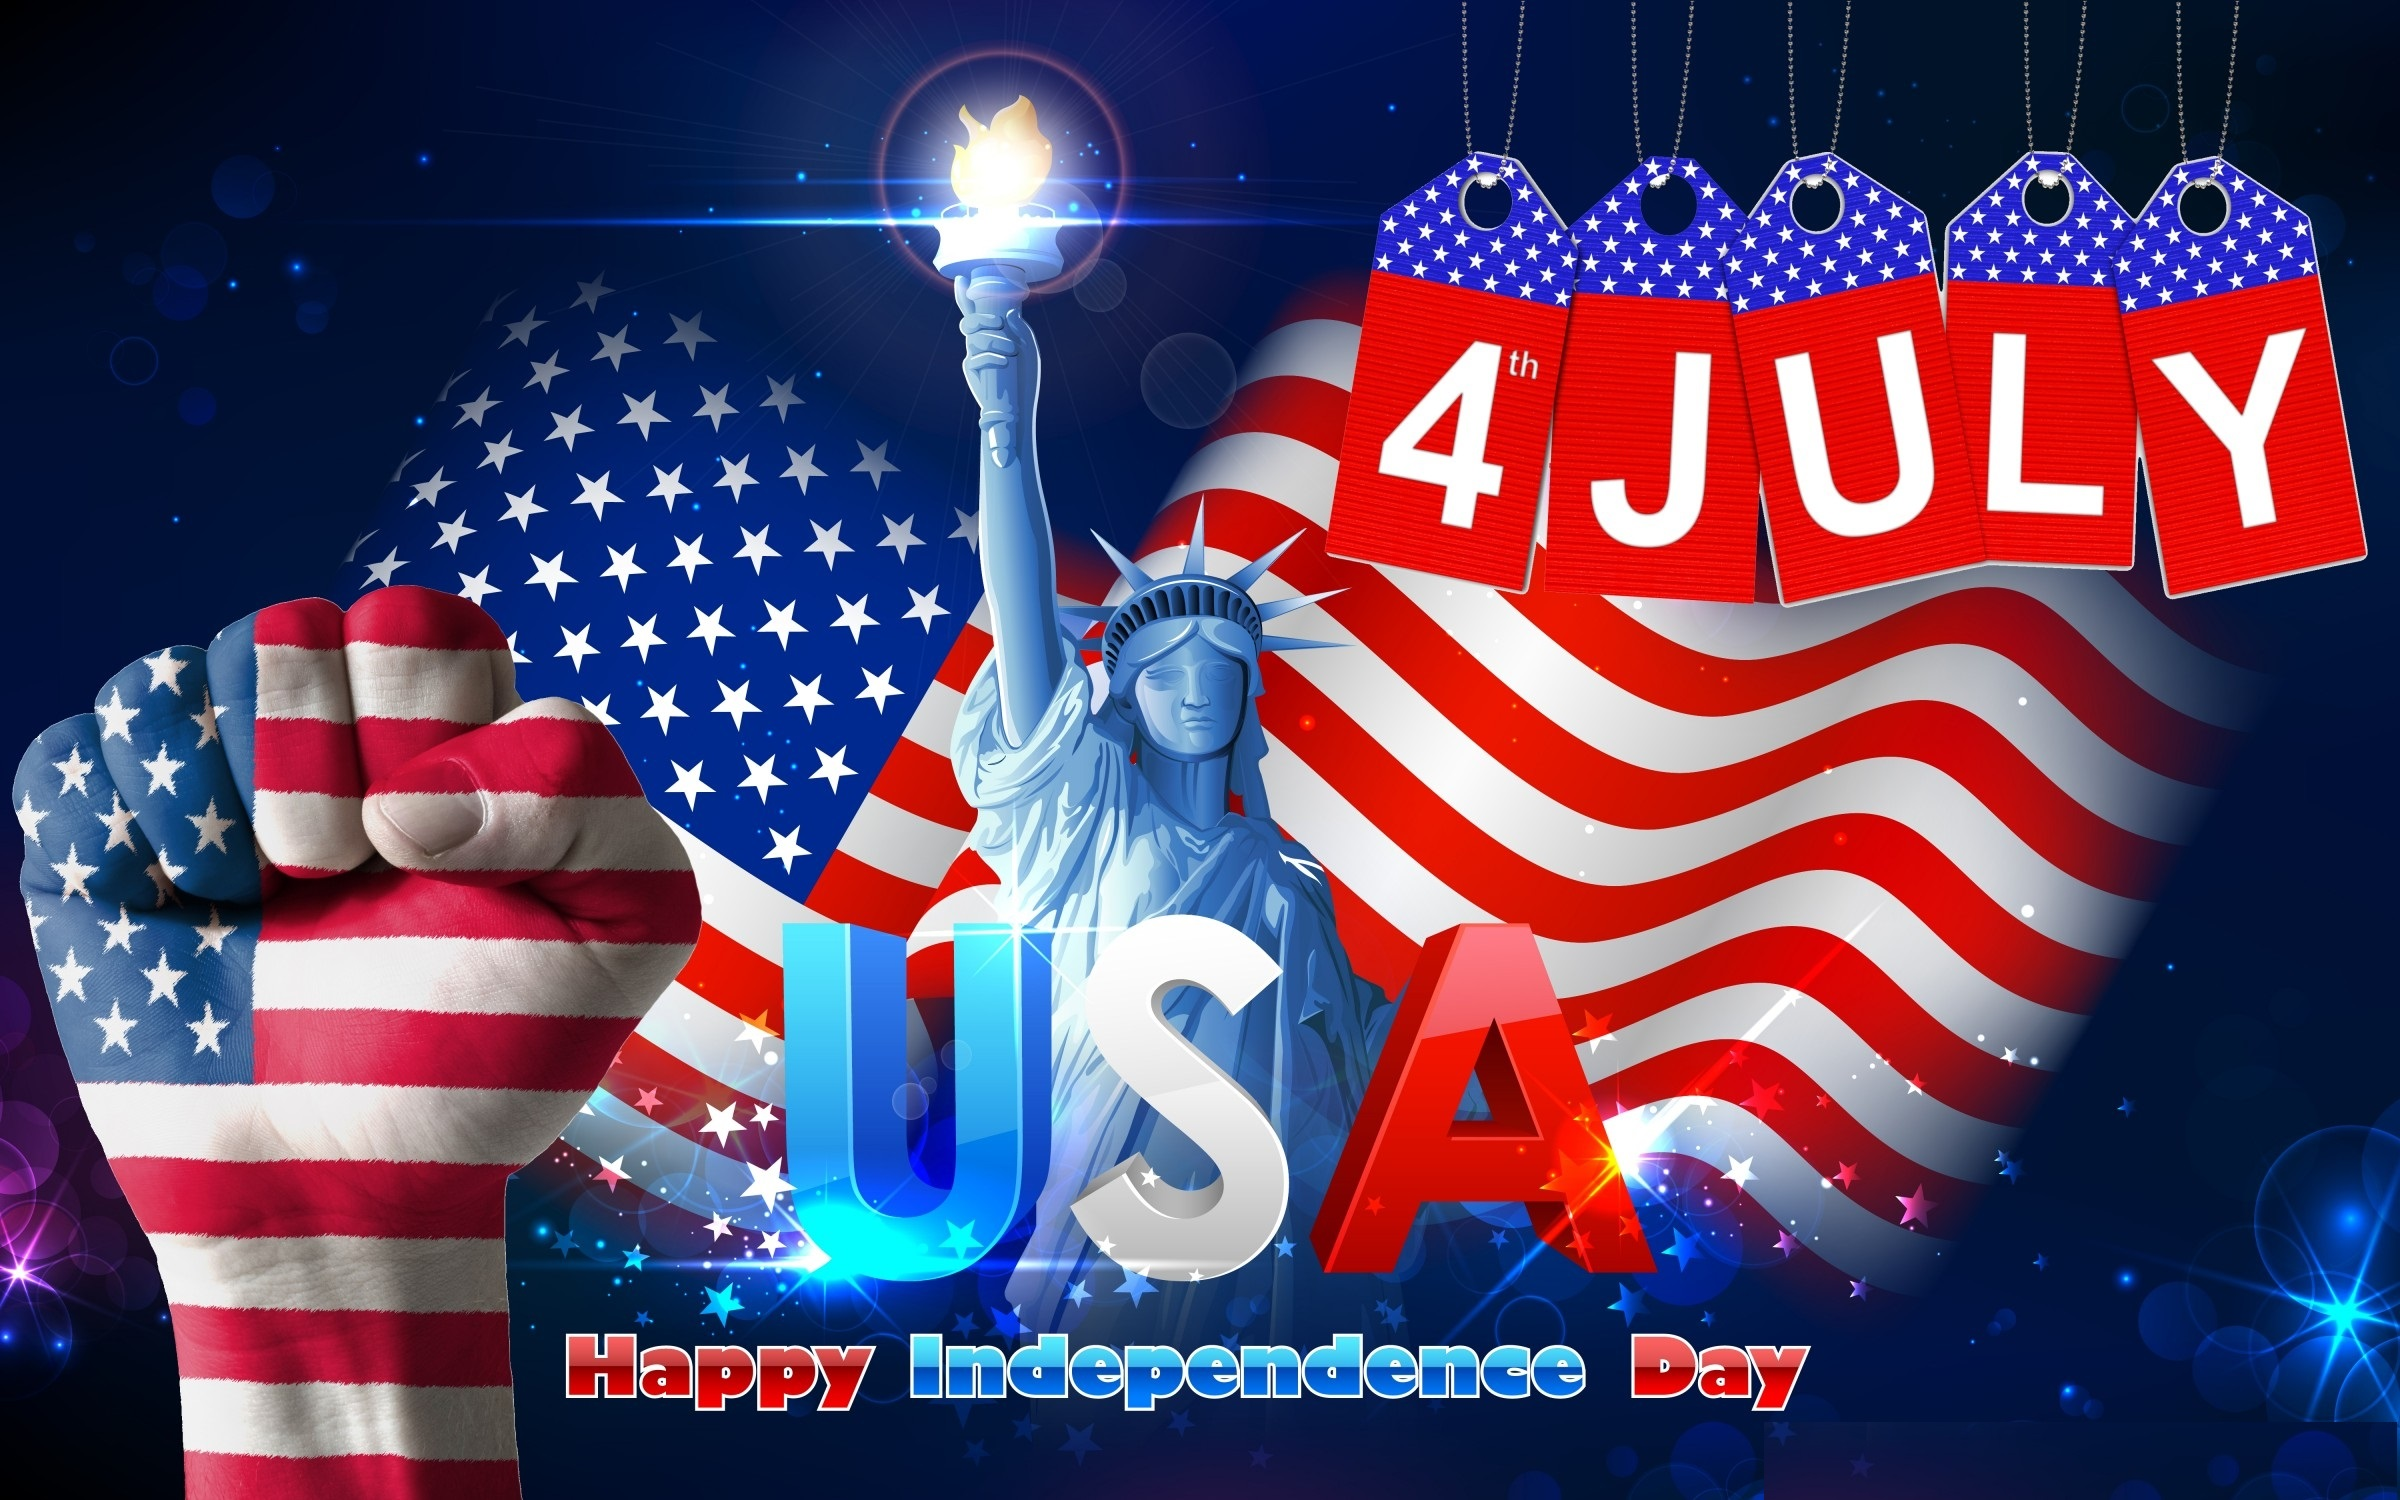 Happy Independence Day 4th july of USA 2016 images